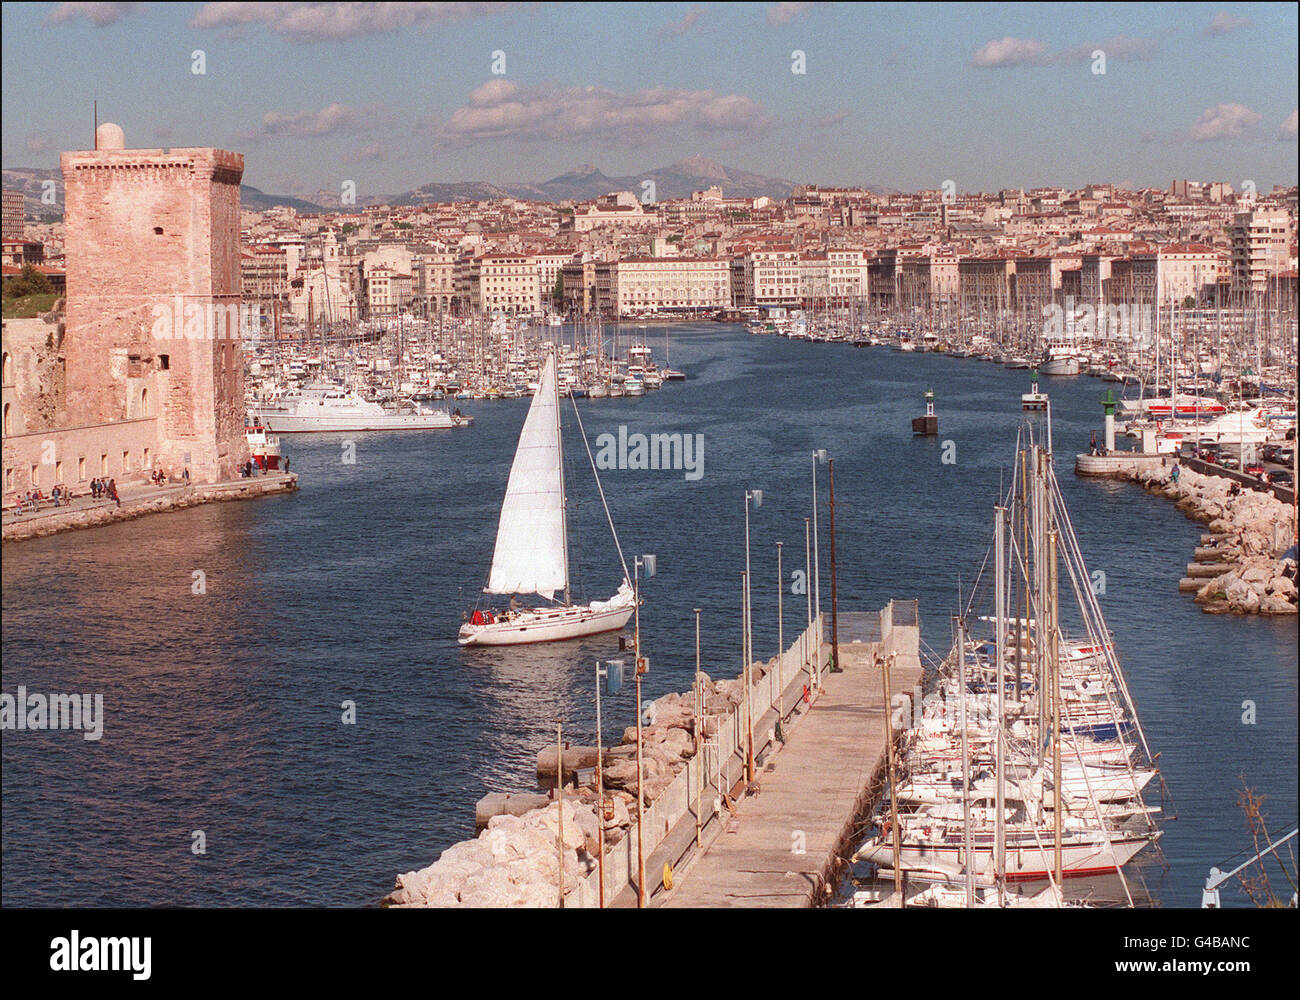 1998 World Cup AFP PHOTO View of the entrance of the old port in Marseille, taken 12 April. Marseille is one of - Stock Image